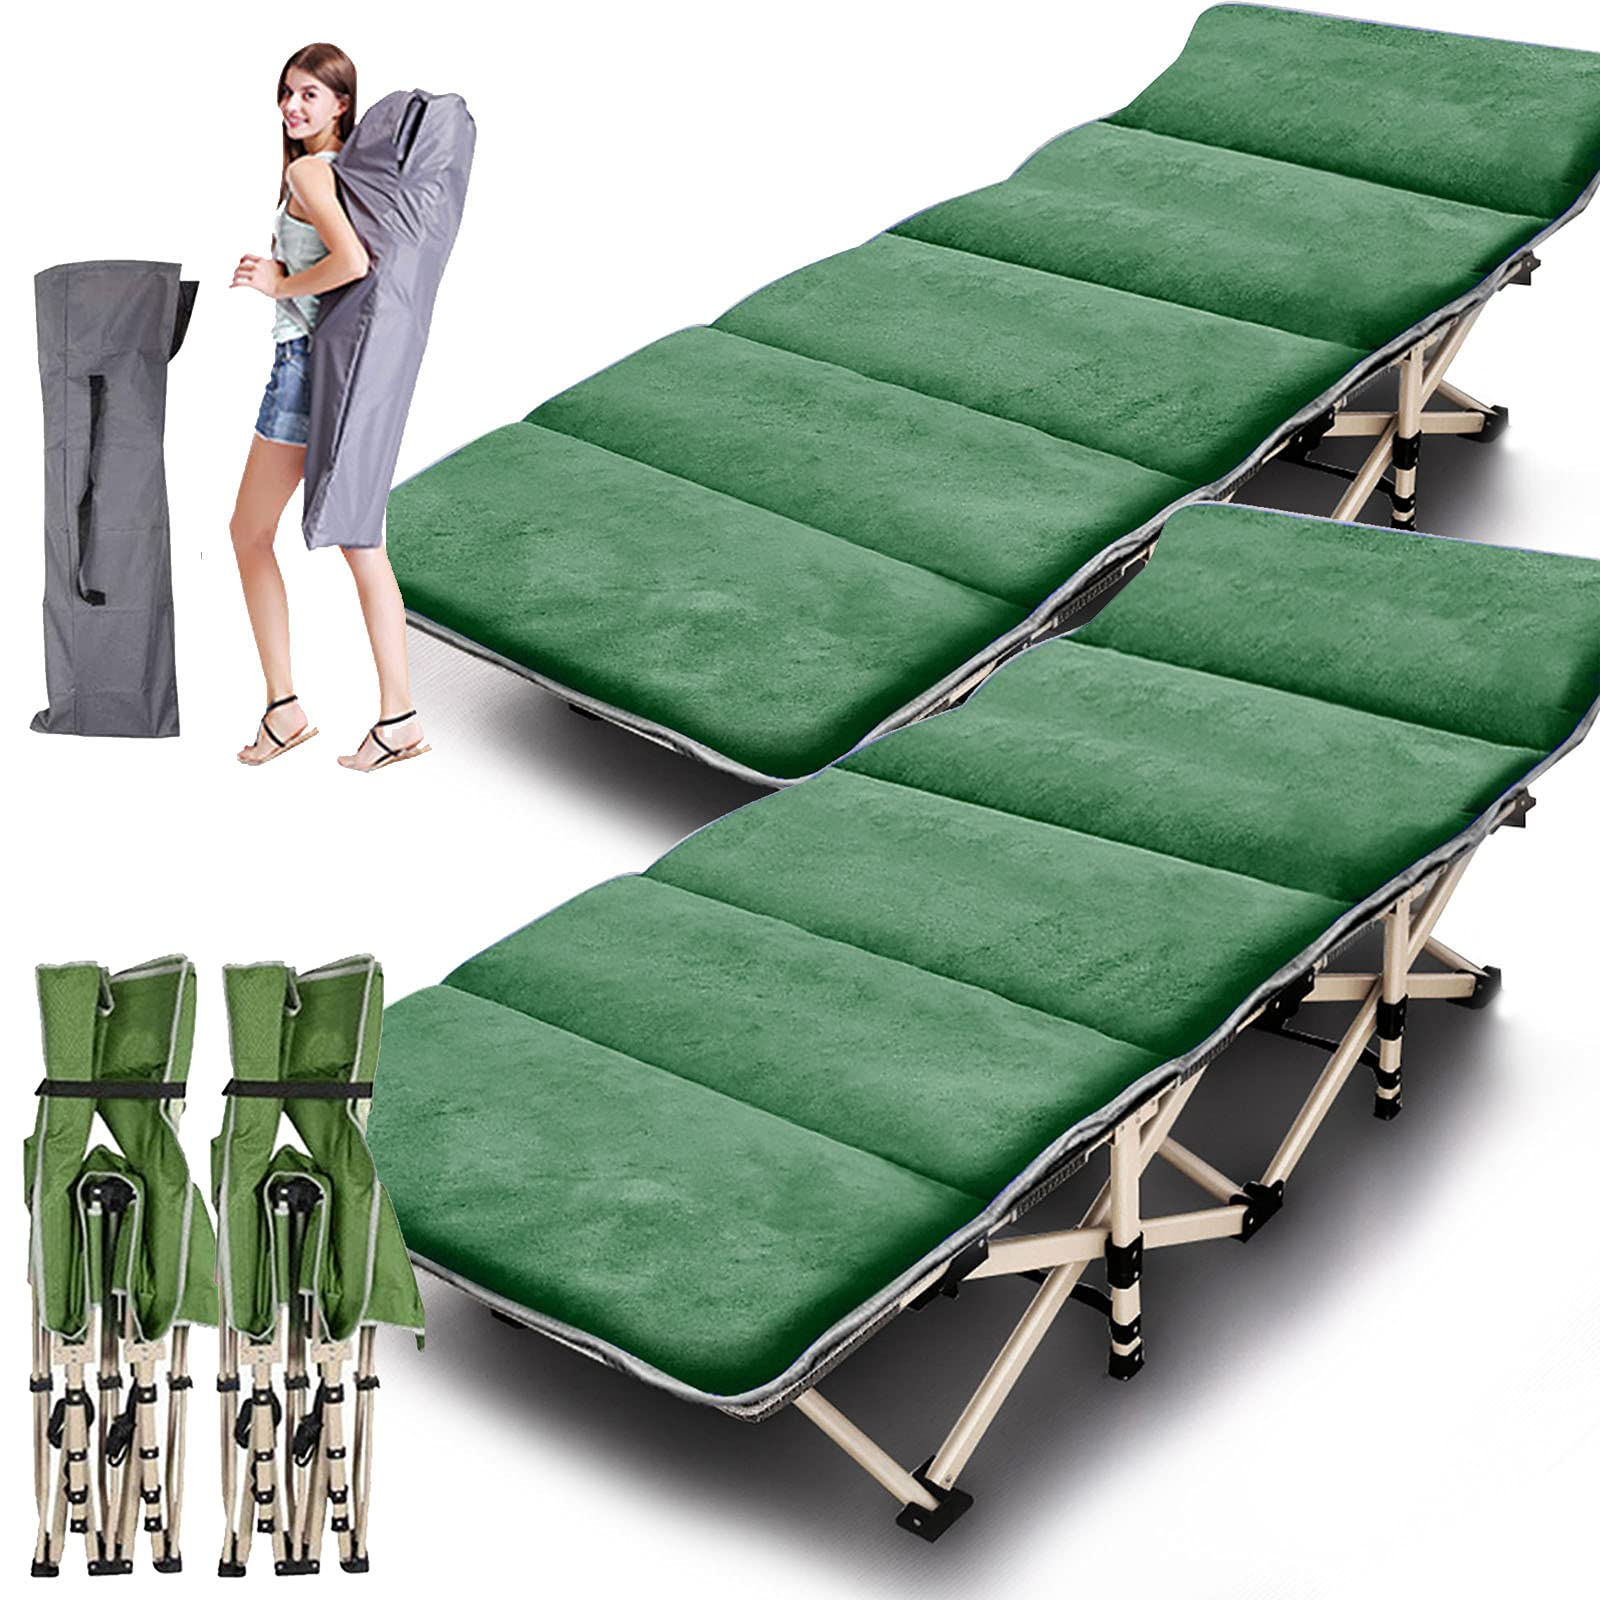 ABORON 2 Pack Camping Cots for Adults, Folding Cots Portable w/Mattress, Heavy Duty Sleeping Cots for Heavy People, with Carrying Bag